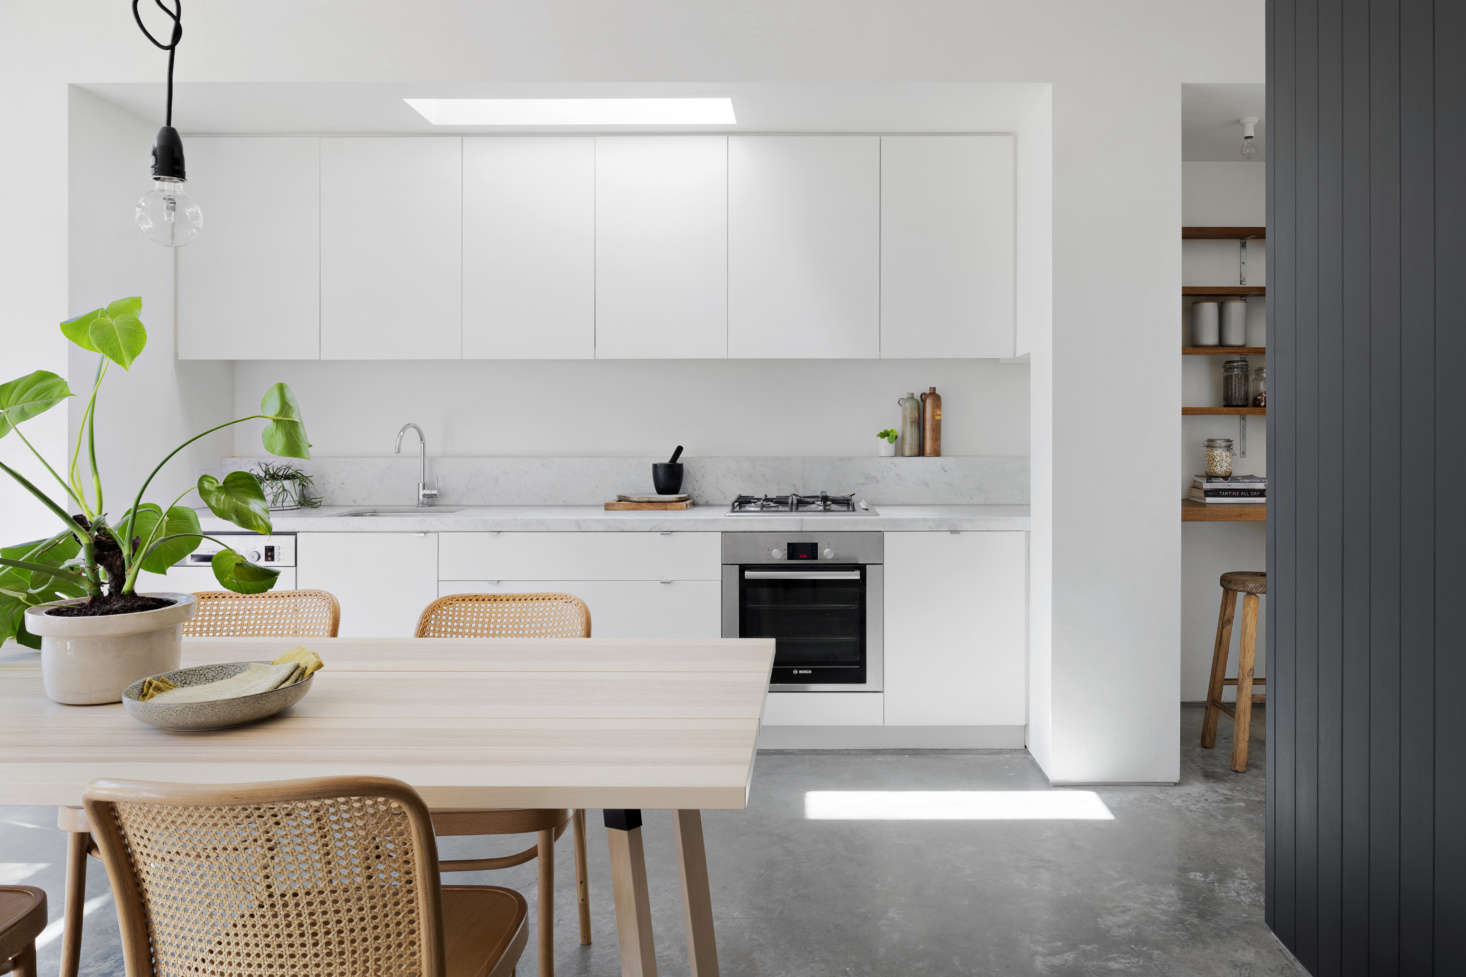 Kilpatrick carefully stuck to a palette of whites and grays offset by warm wood tones. A frameless skylight over the kitchen further brightens the space.&#8